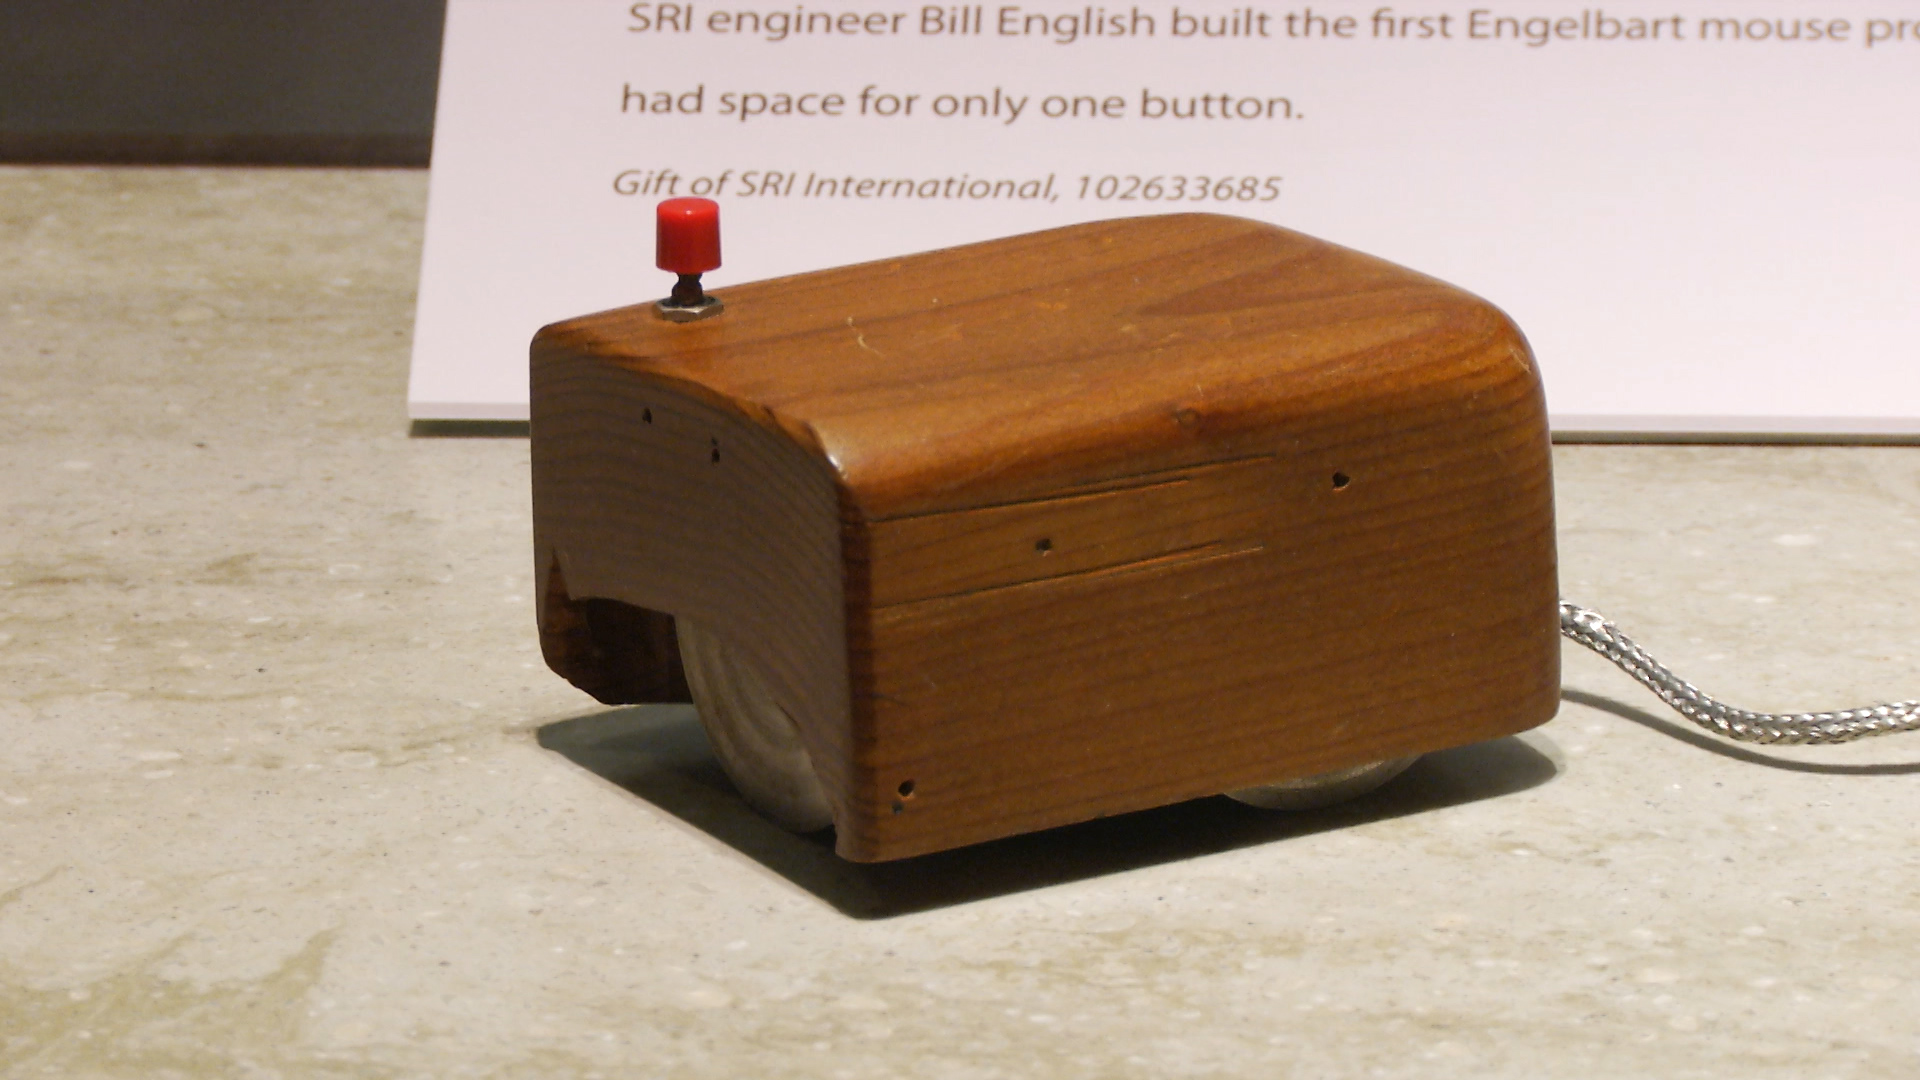 A replica of the computer mouse introduced to the public 50 years ago by Douglas Engelbart from SRI International in a presentation now called The mother of all demos.